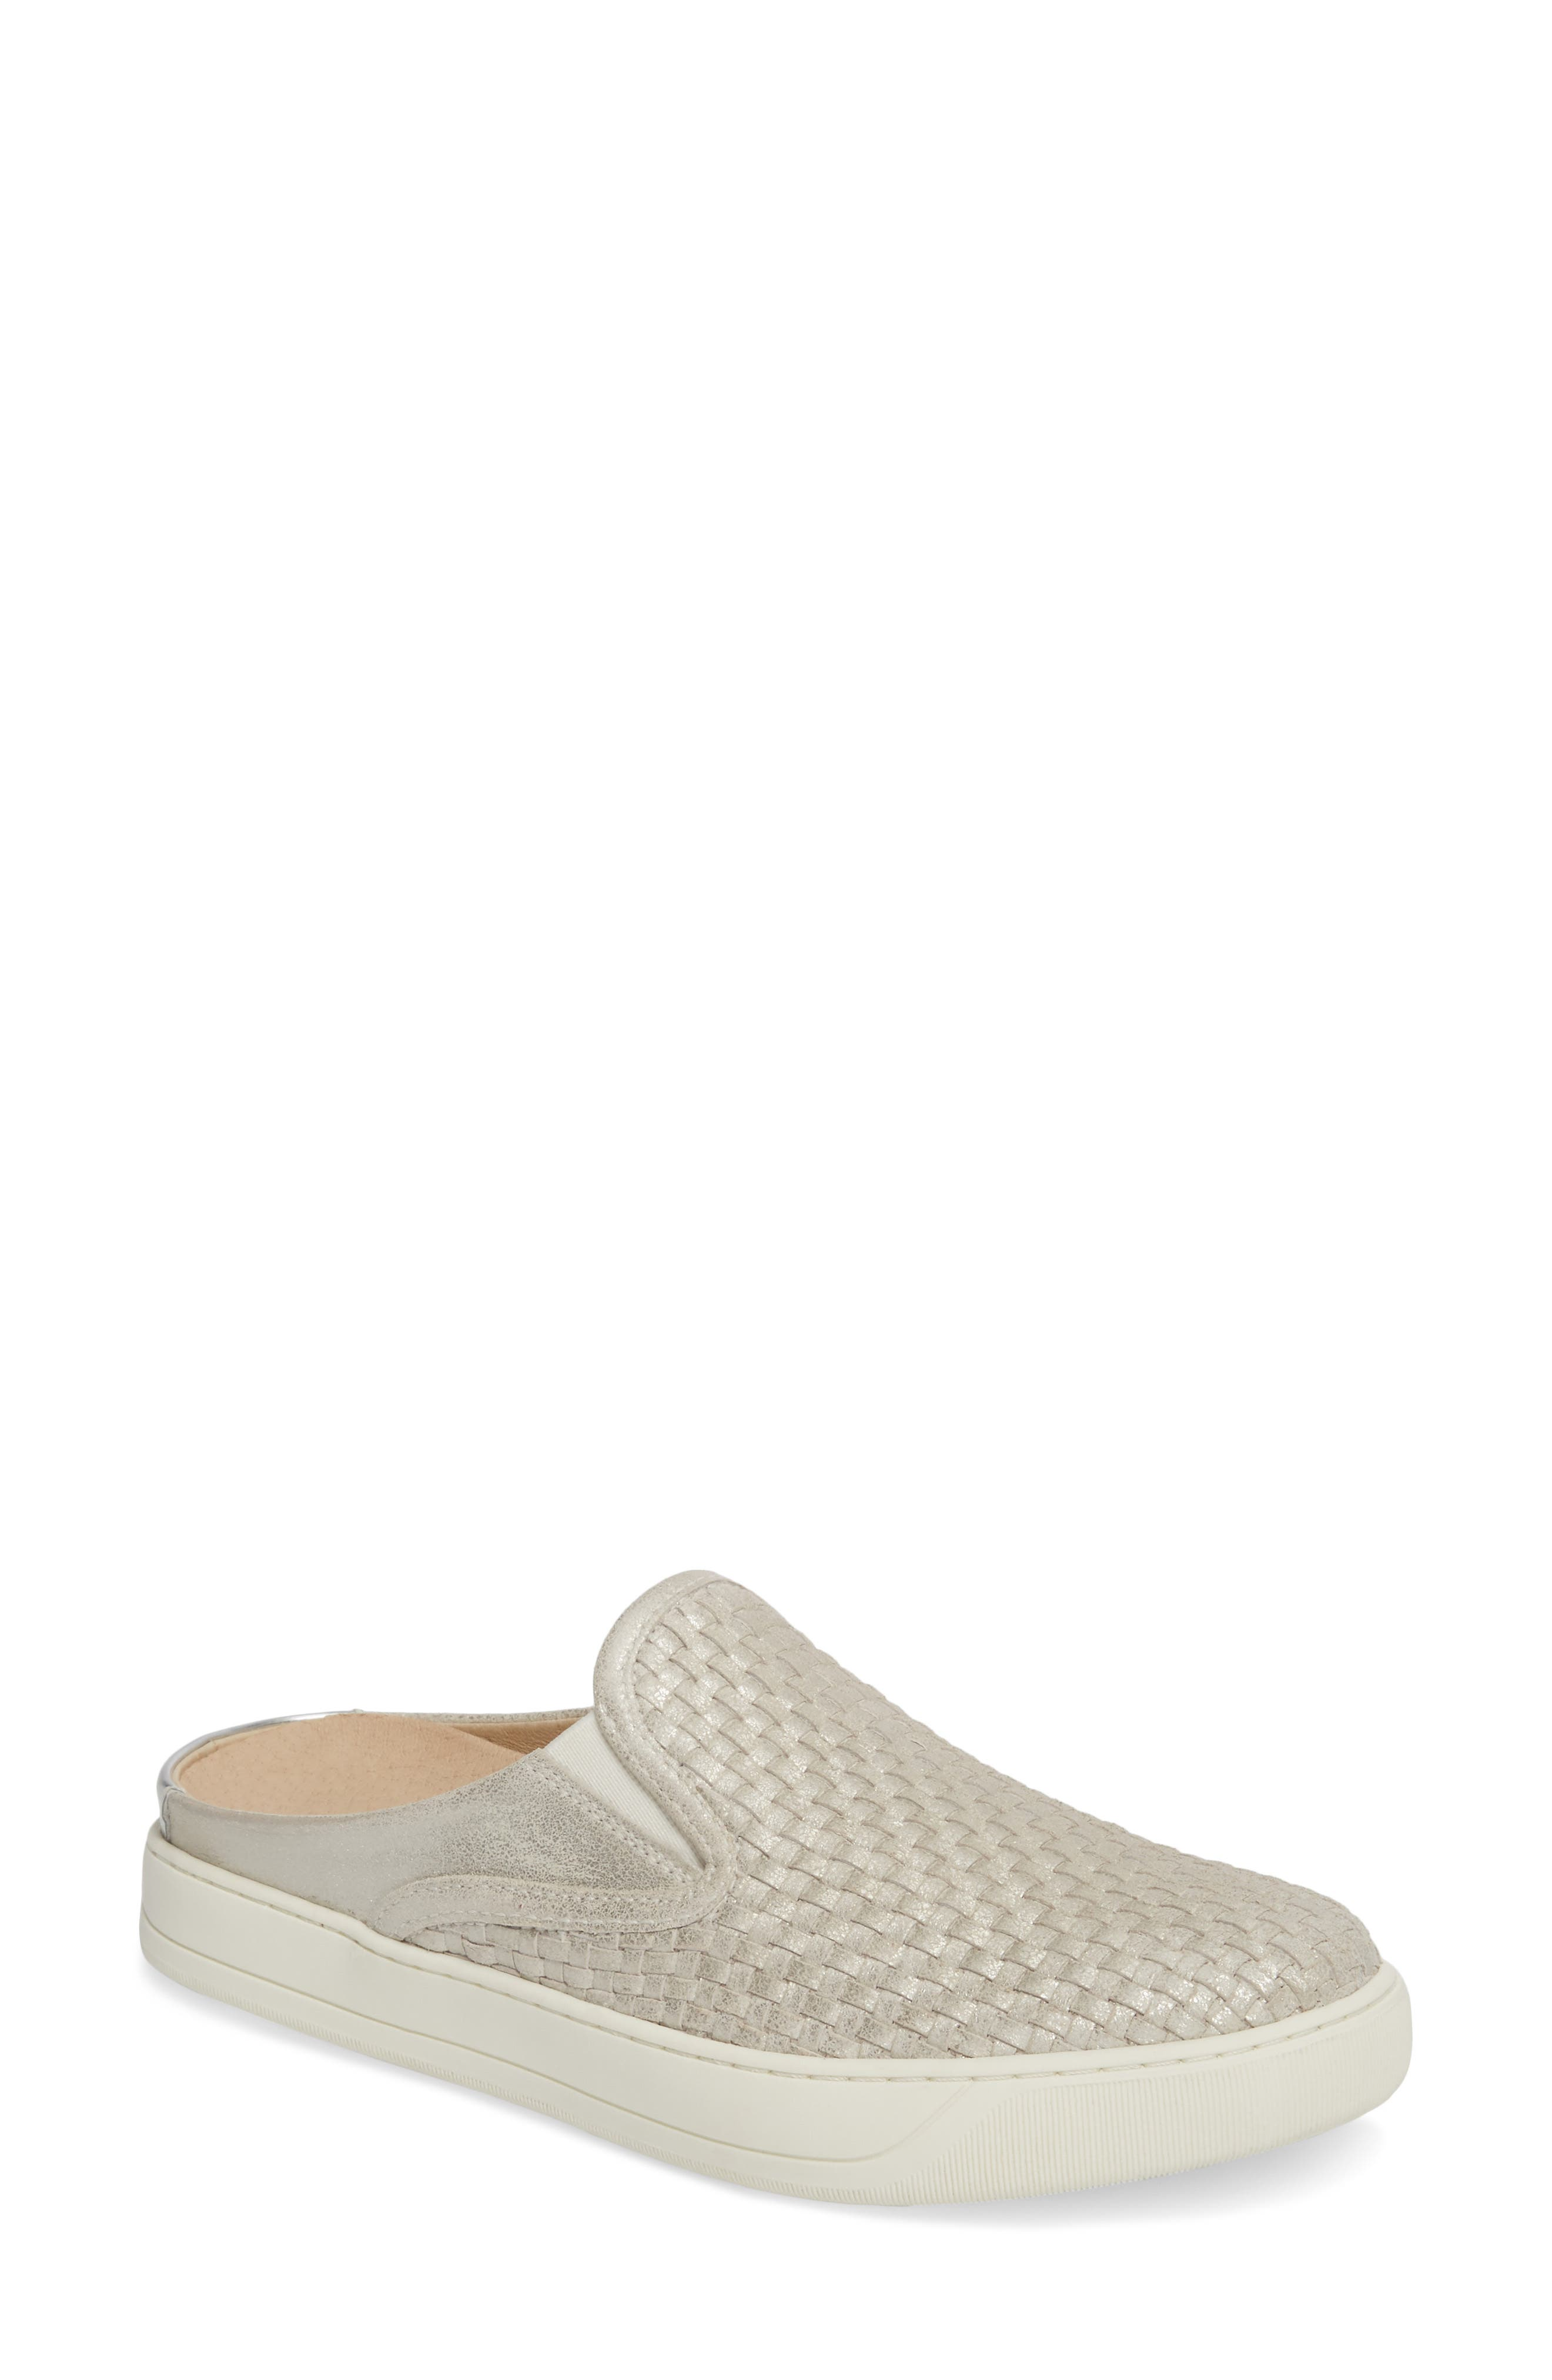 Evie Slip-On Sneaker,                             Main thumbnail 1, color,                             ICE LEATHER